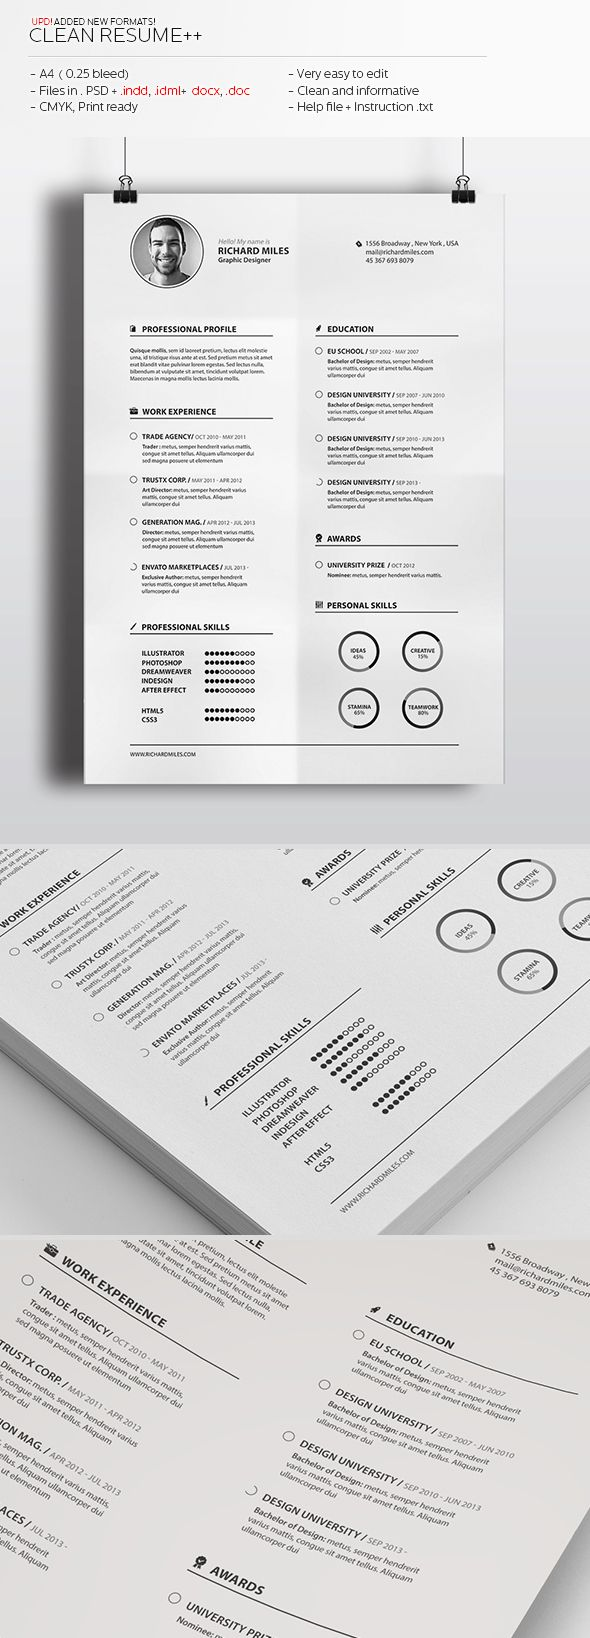 Clean Resume+ by Realstar, via Behance